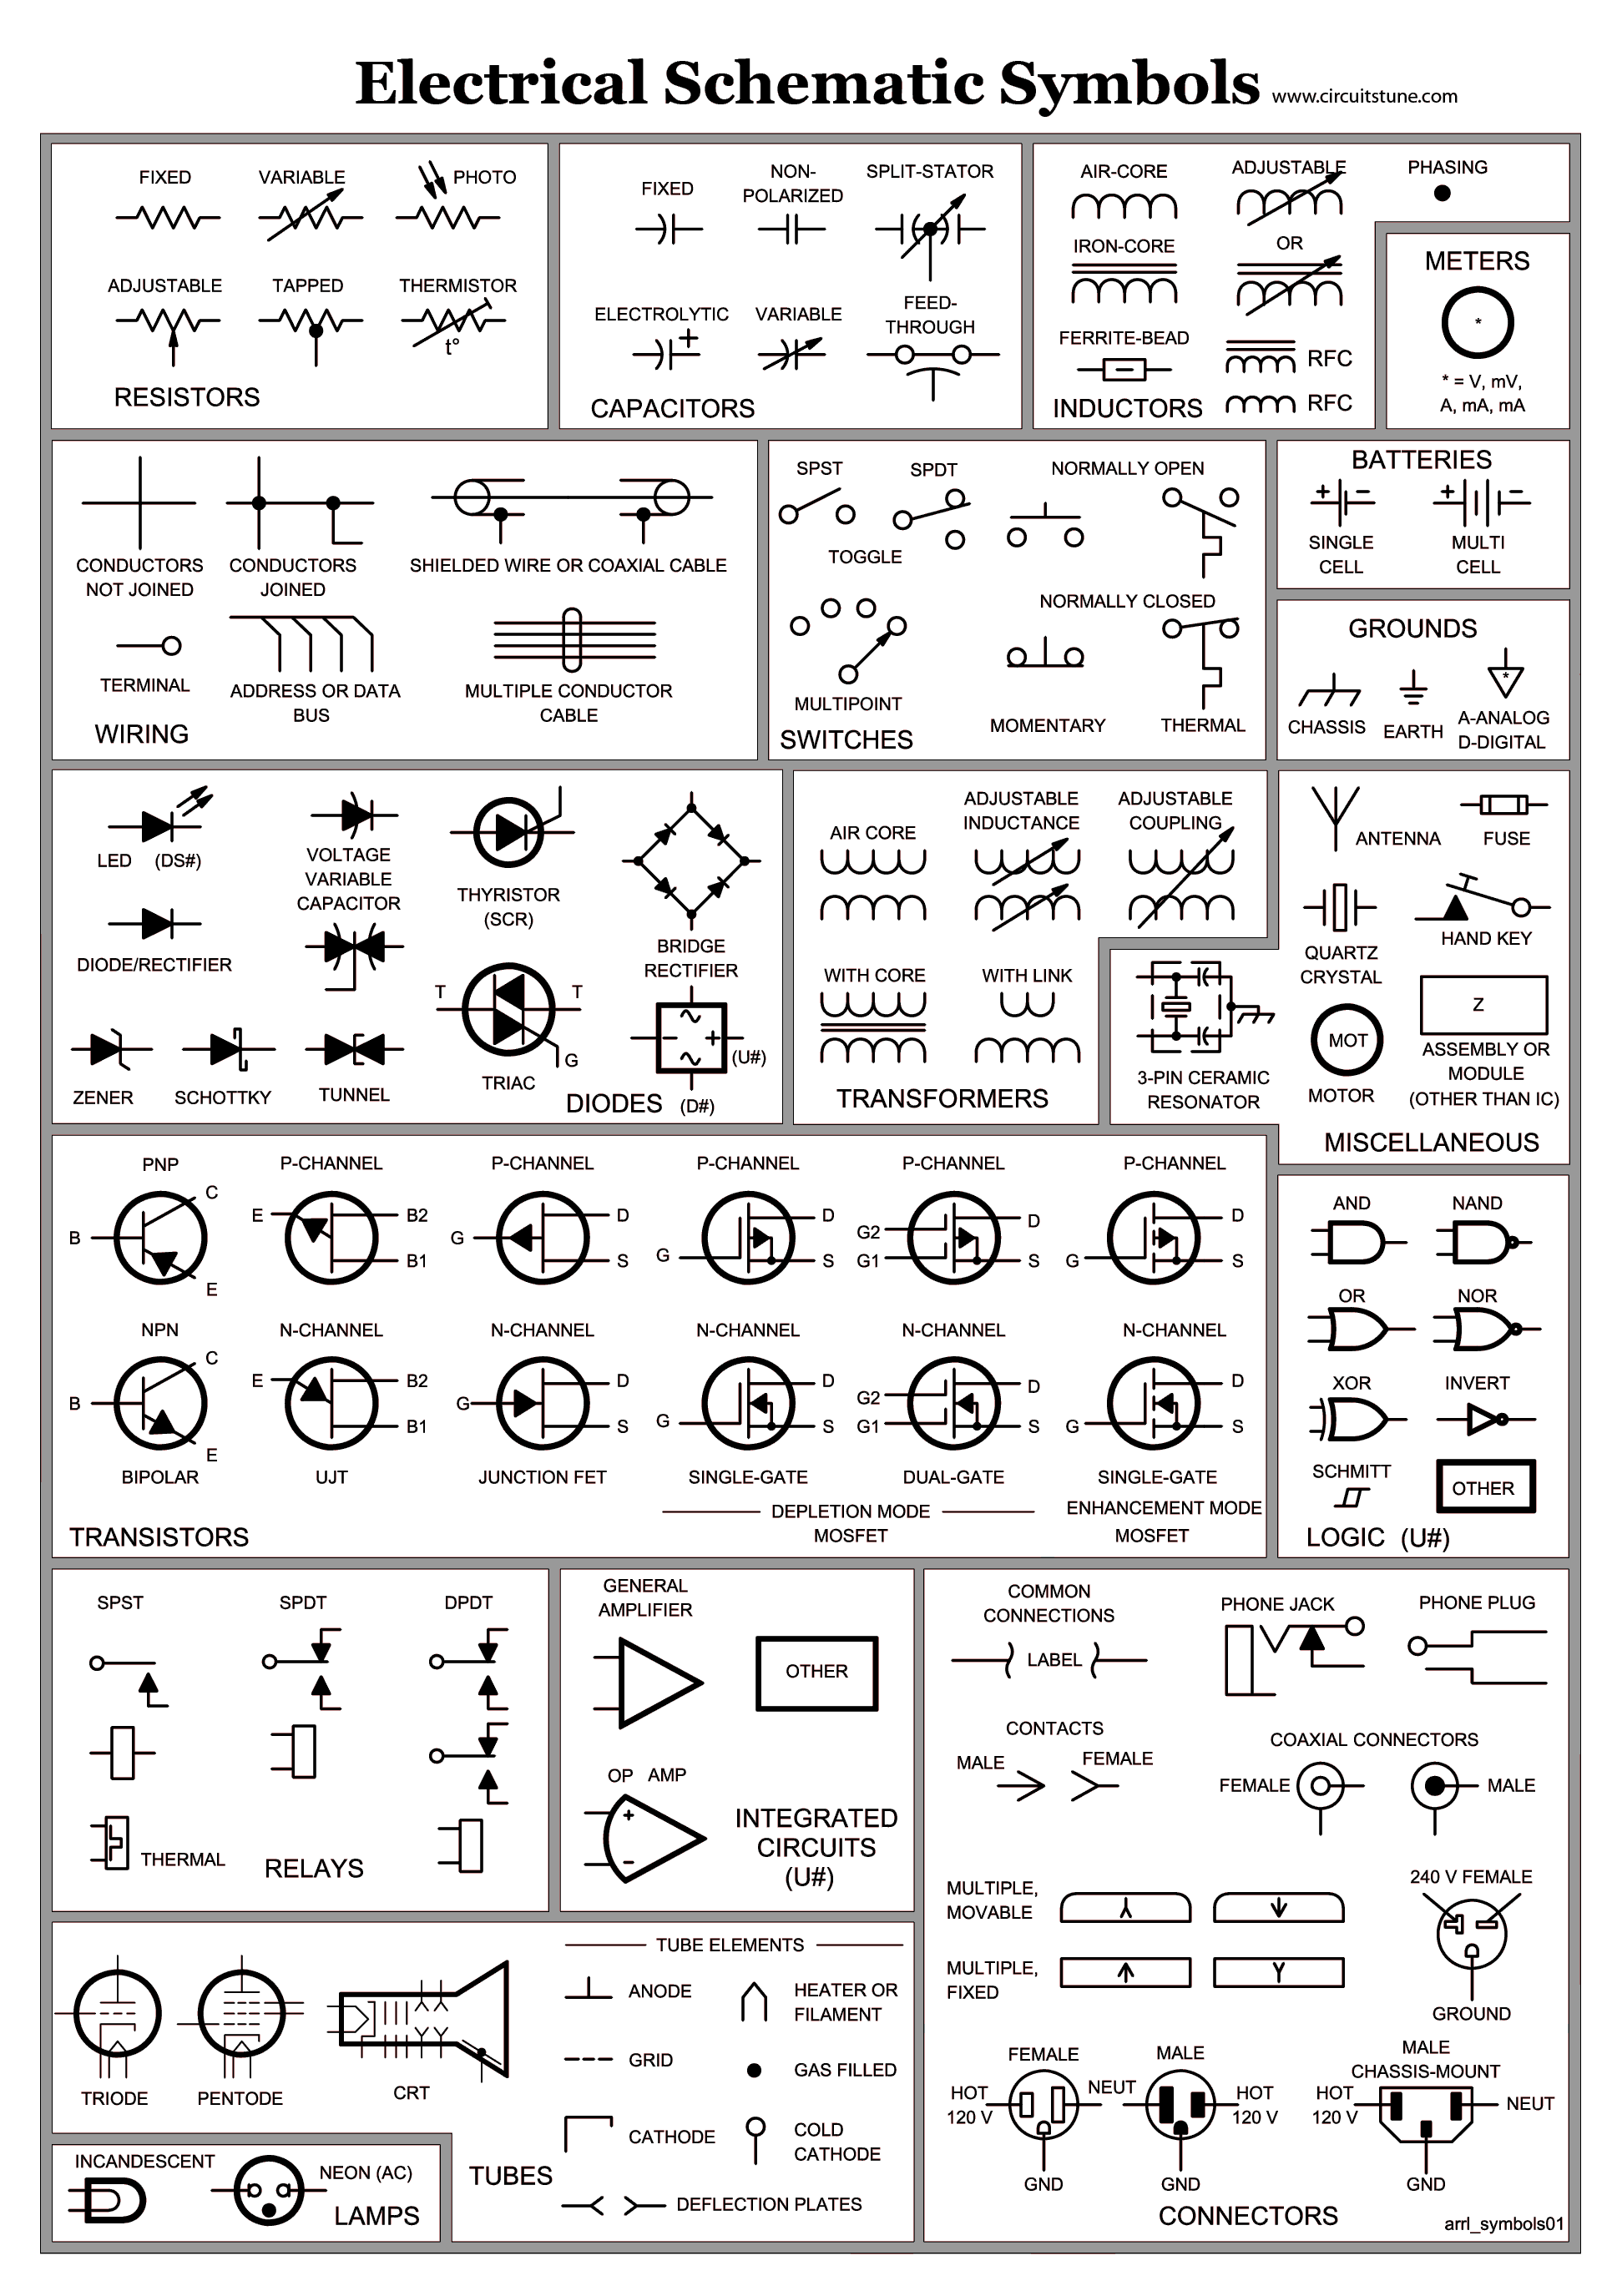 a65d176364692d2ebe913b58a654cfc3 wire diagram symbols blue wiring diagram wire symbol \u2022 wiring how to read control panel wiring diagrams pdf at fashall.co